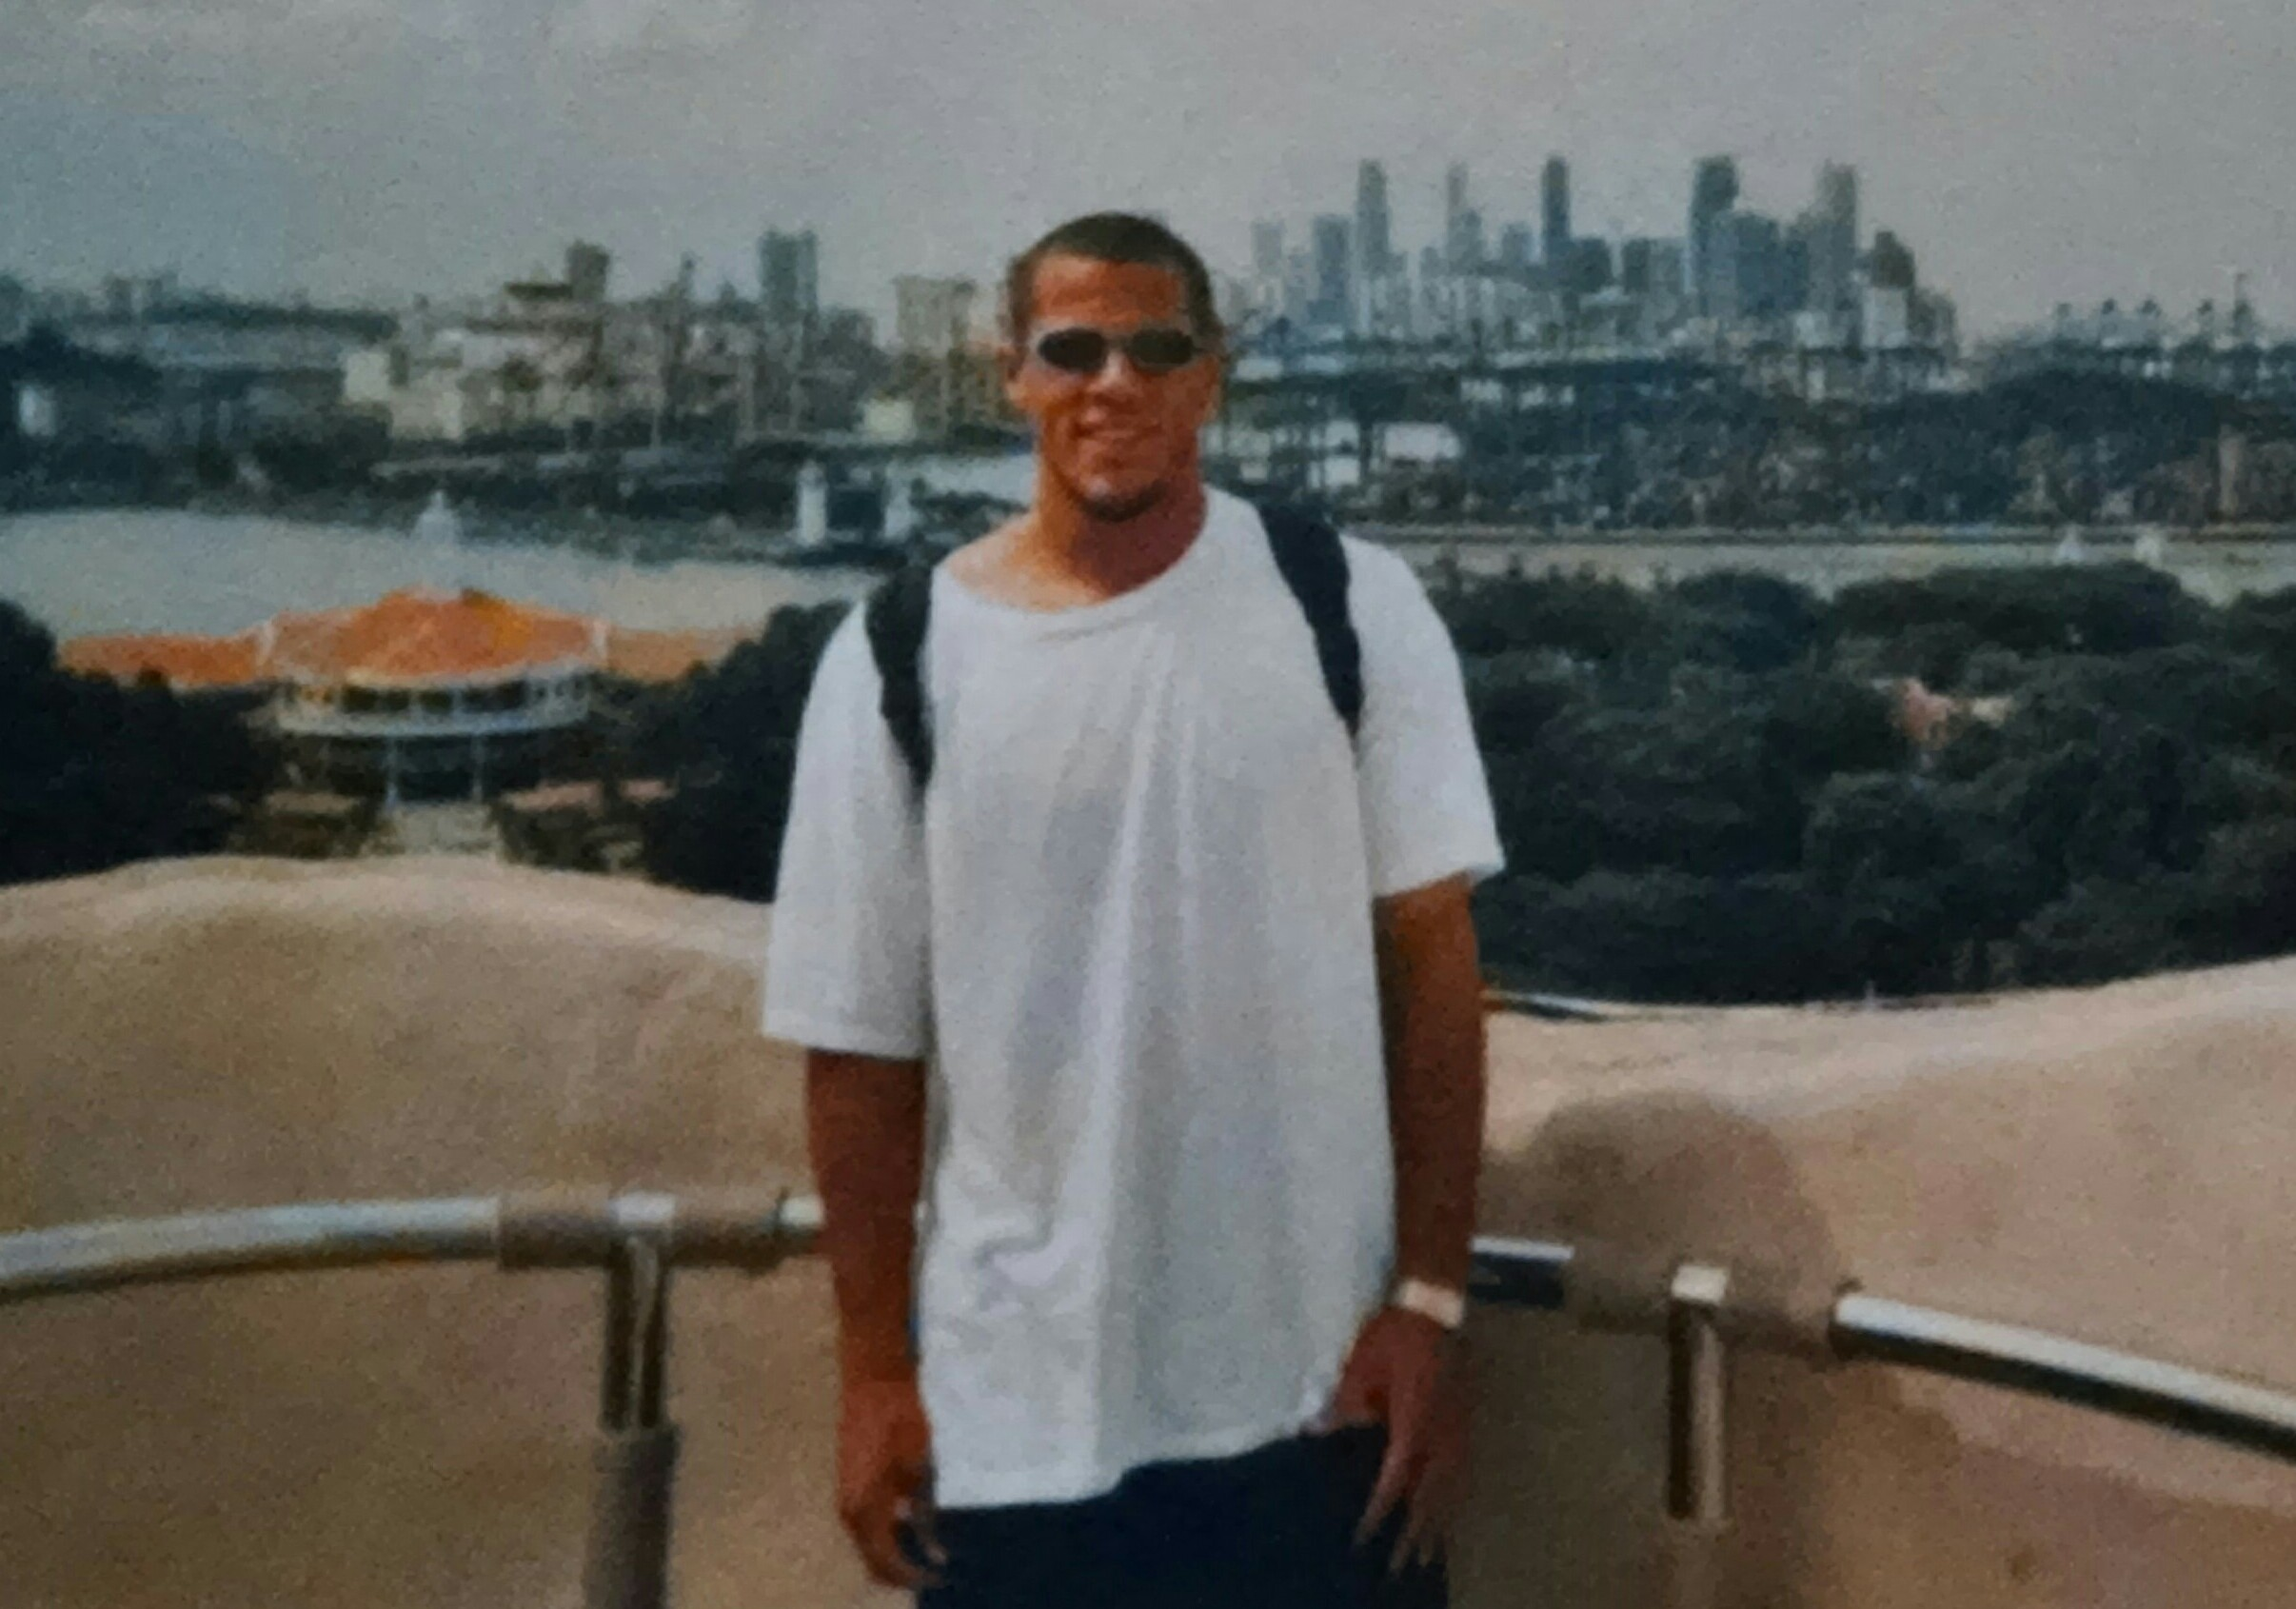 Jeremie Piette in Singapore as a professional soccer player - from the personal collection